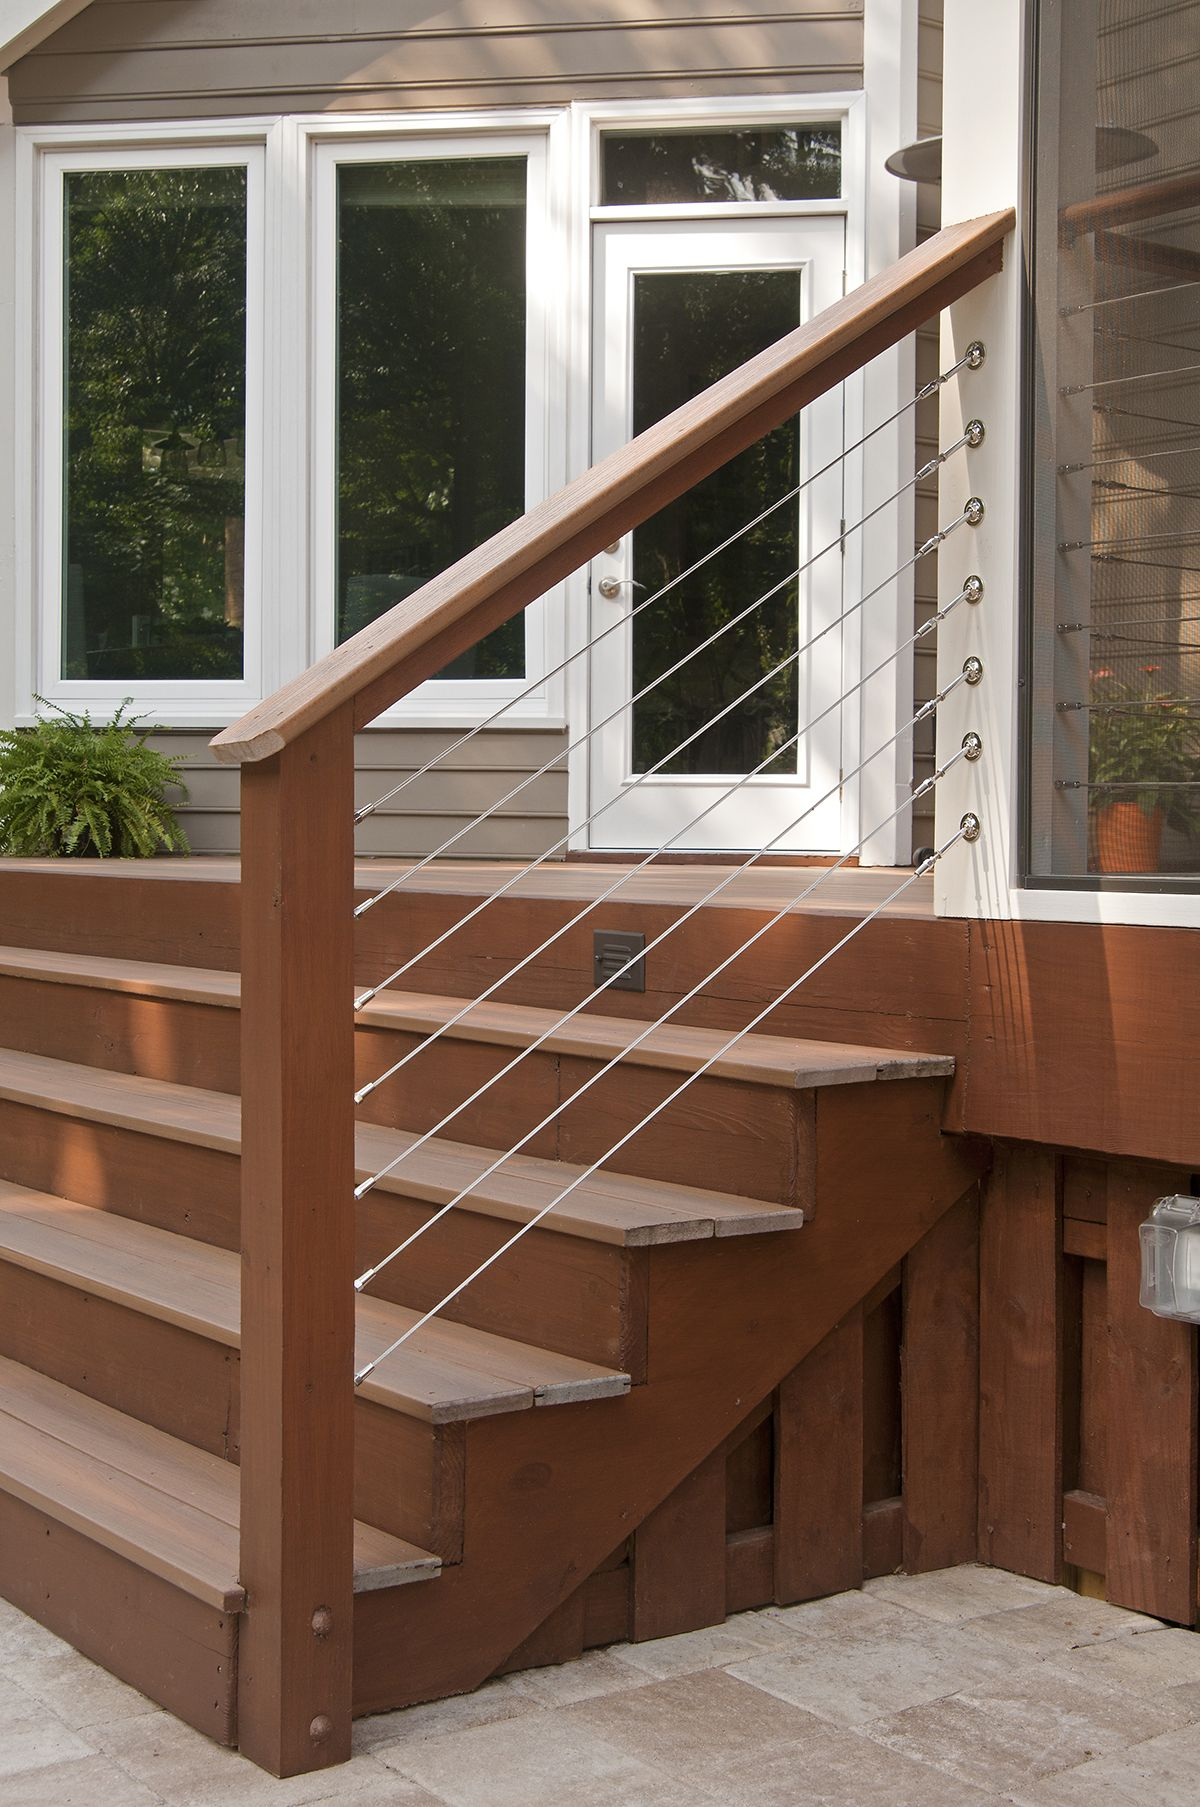 wire porch railing ideas on fiberon composite steps and horizontal wire railing that leads to new back porch designed and built by atla deck railing diy patio railing outdoor living deck deck railing diy patio railing